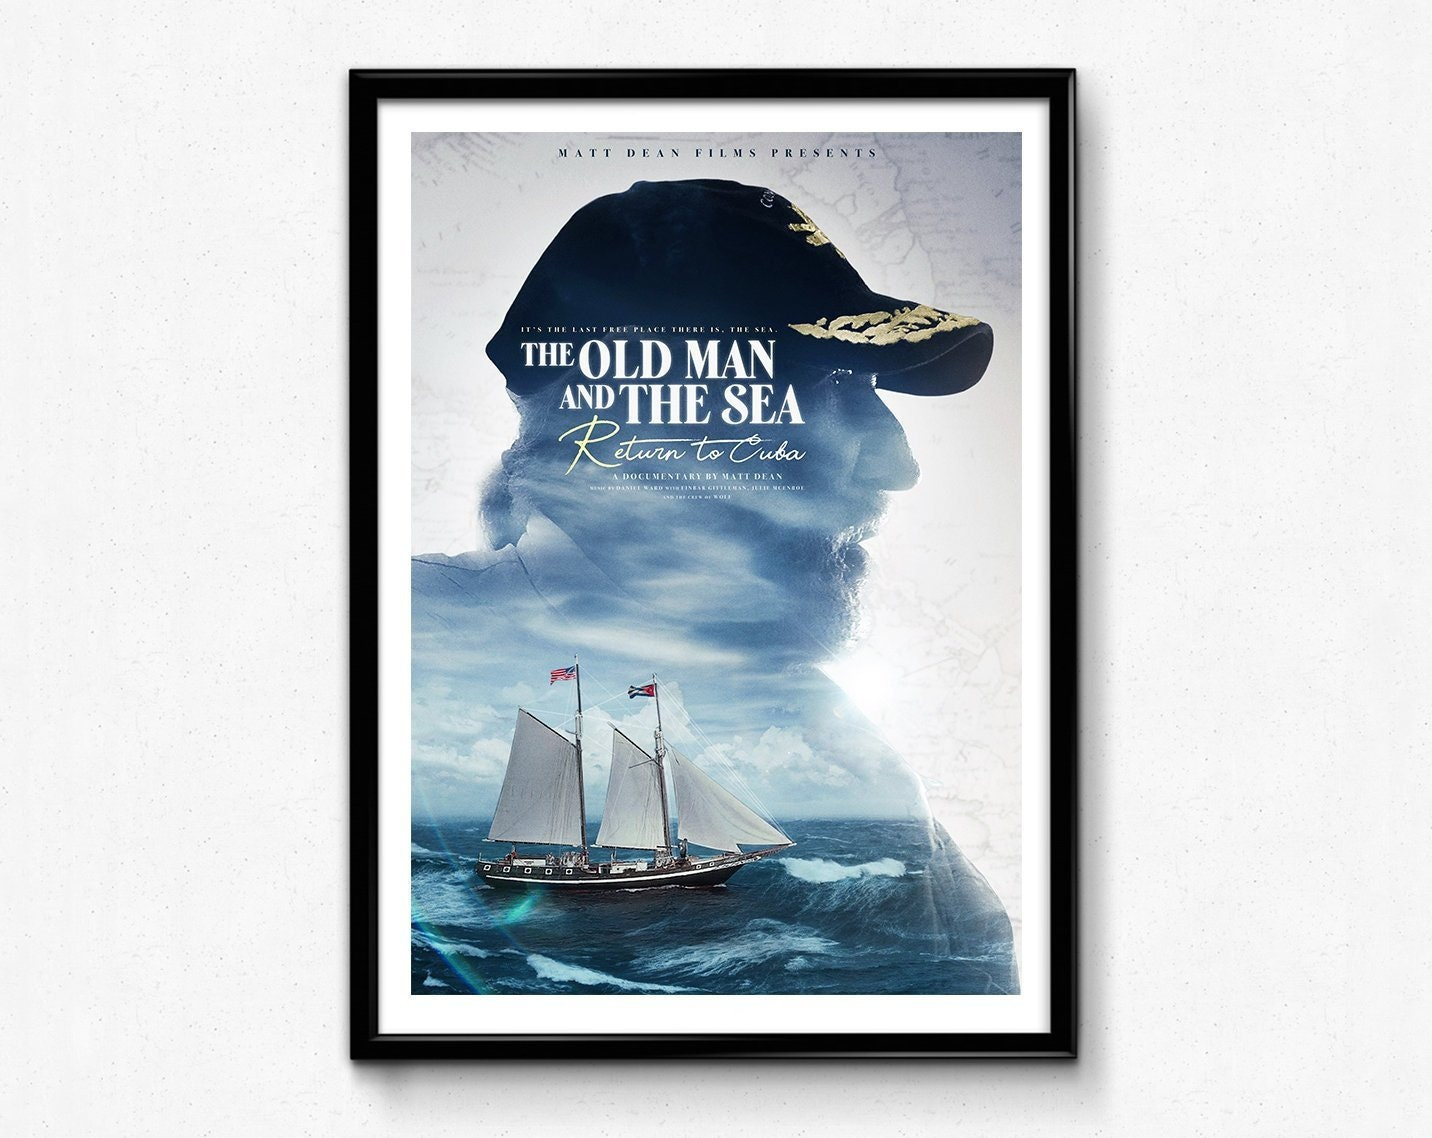 the old man and the sea free download